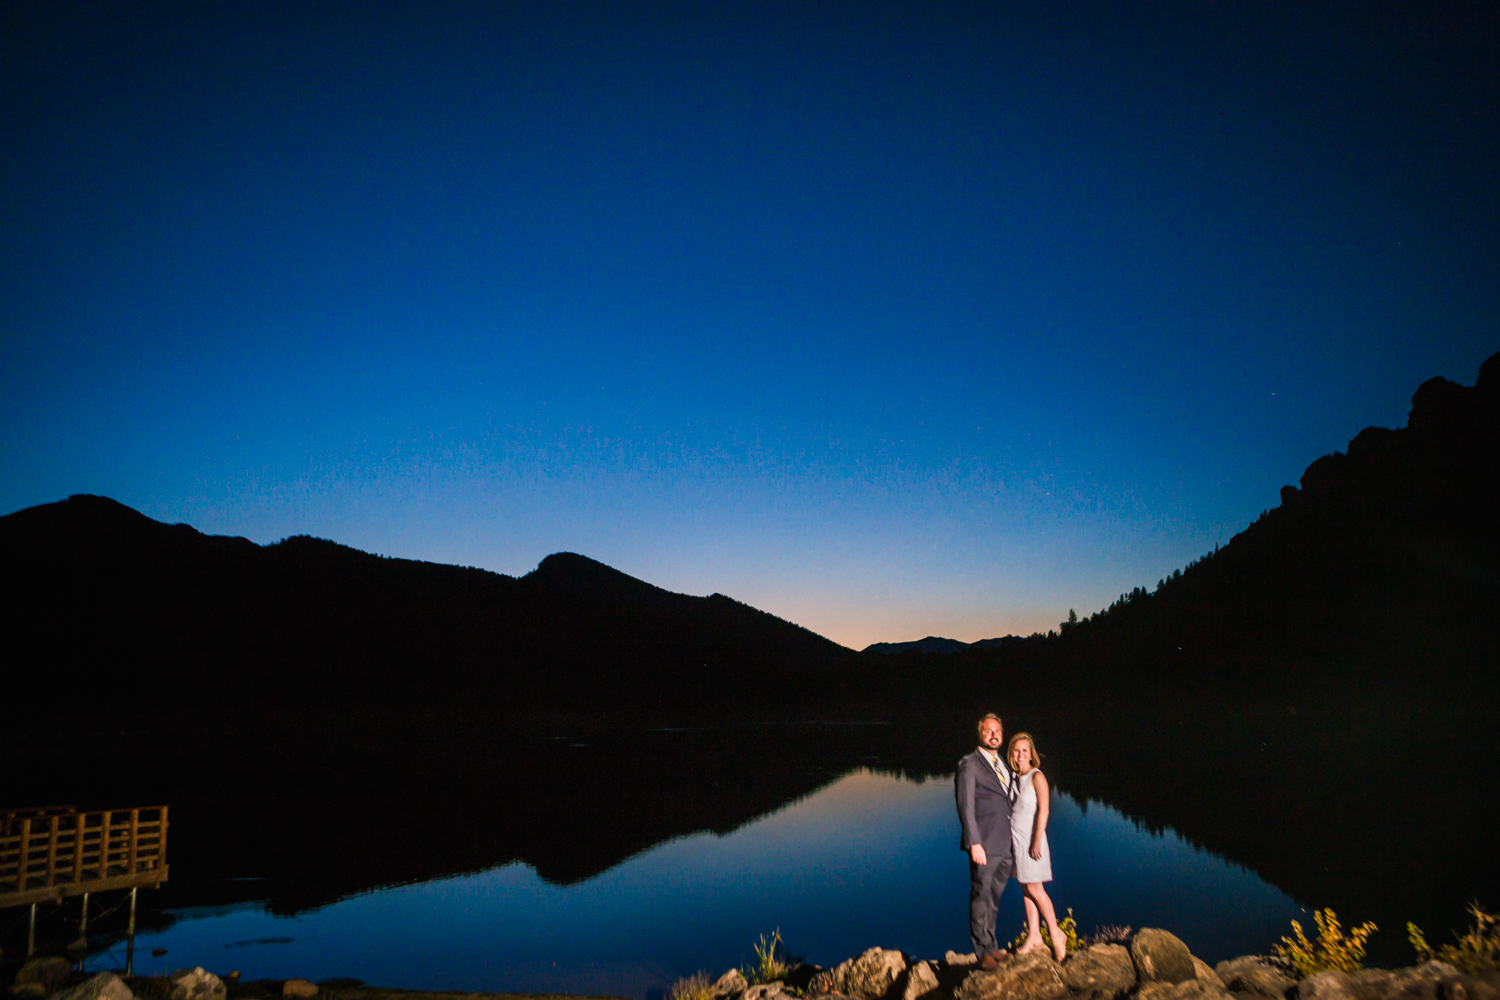 Sunset engagement pictures taken in Estes Park Colorado by JMGant Photography.